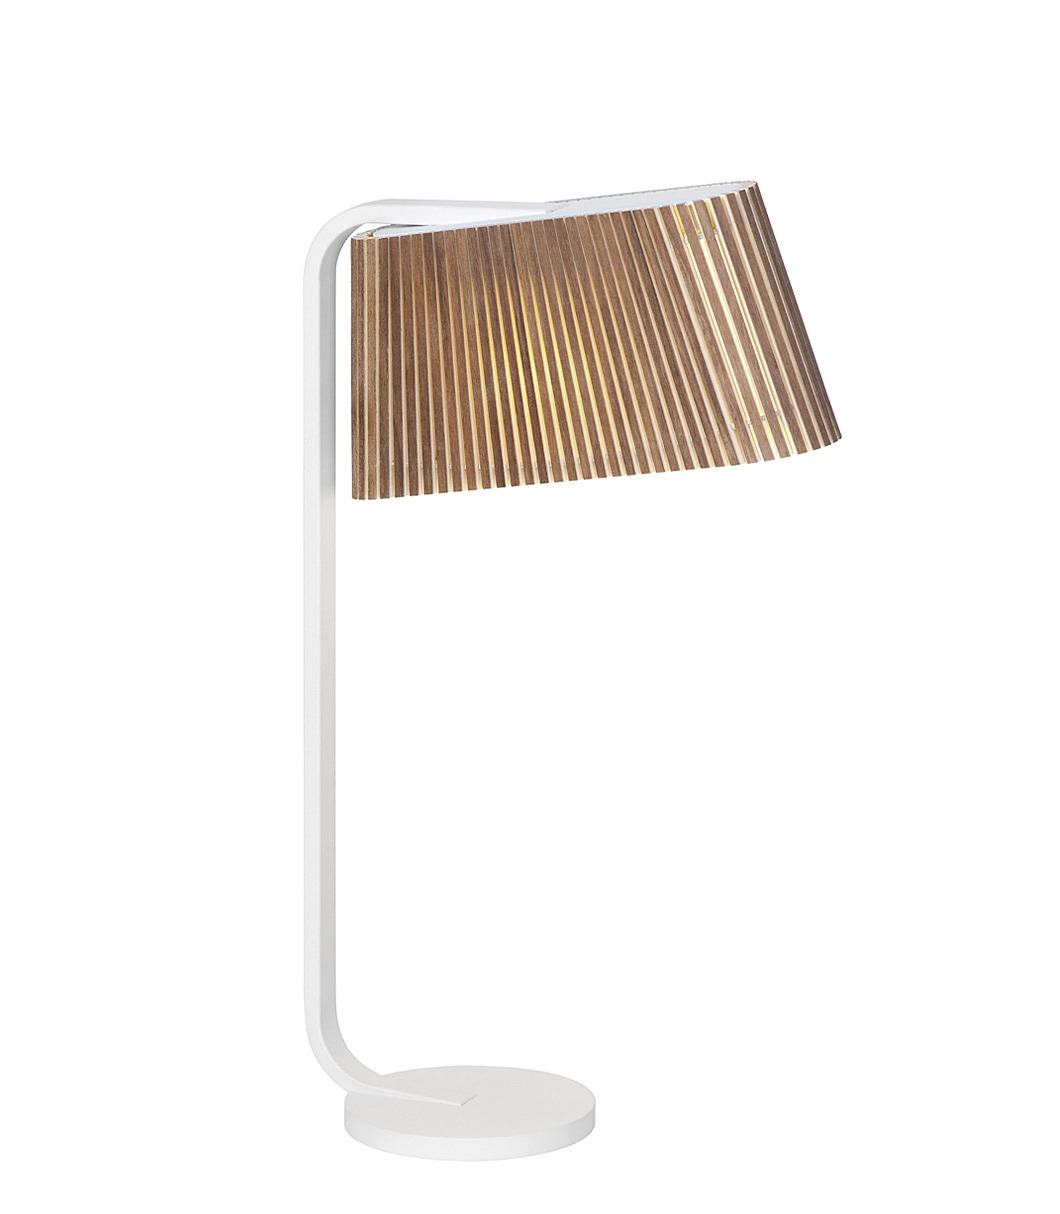 Owalo 7020 table lamp color walnut